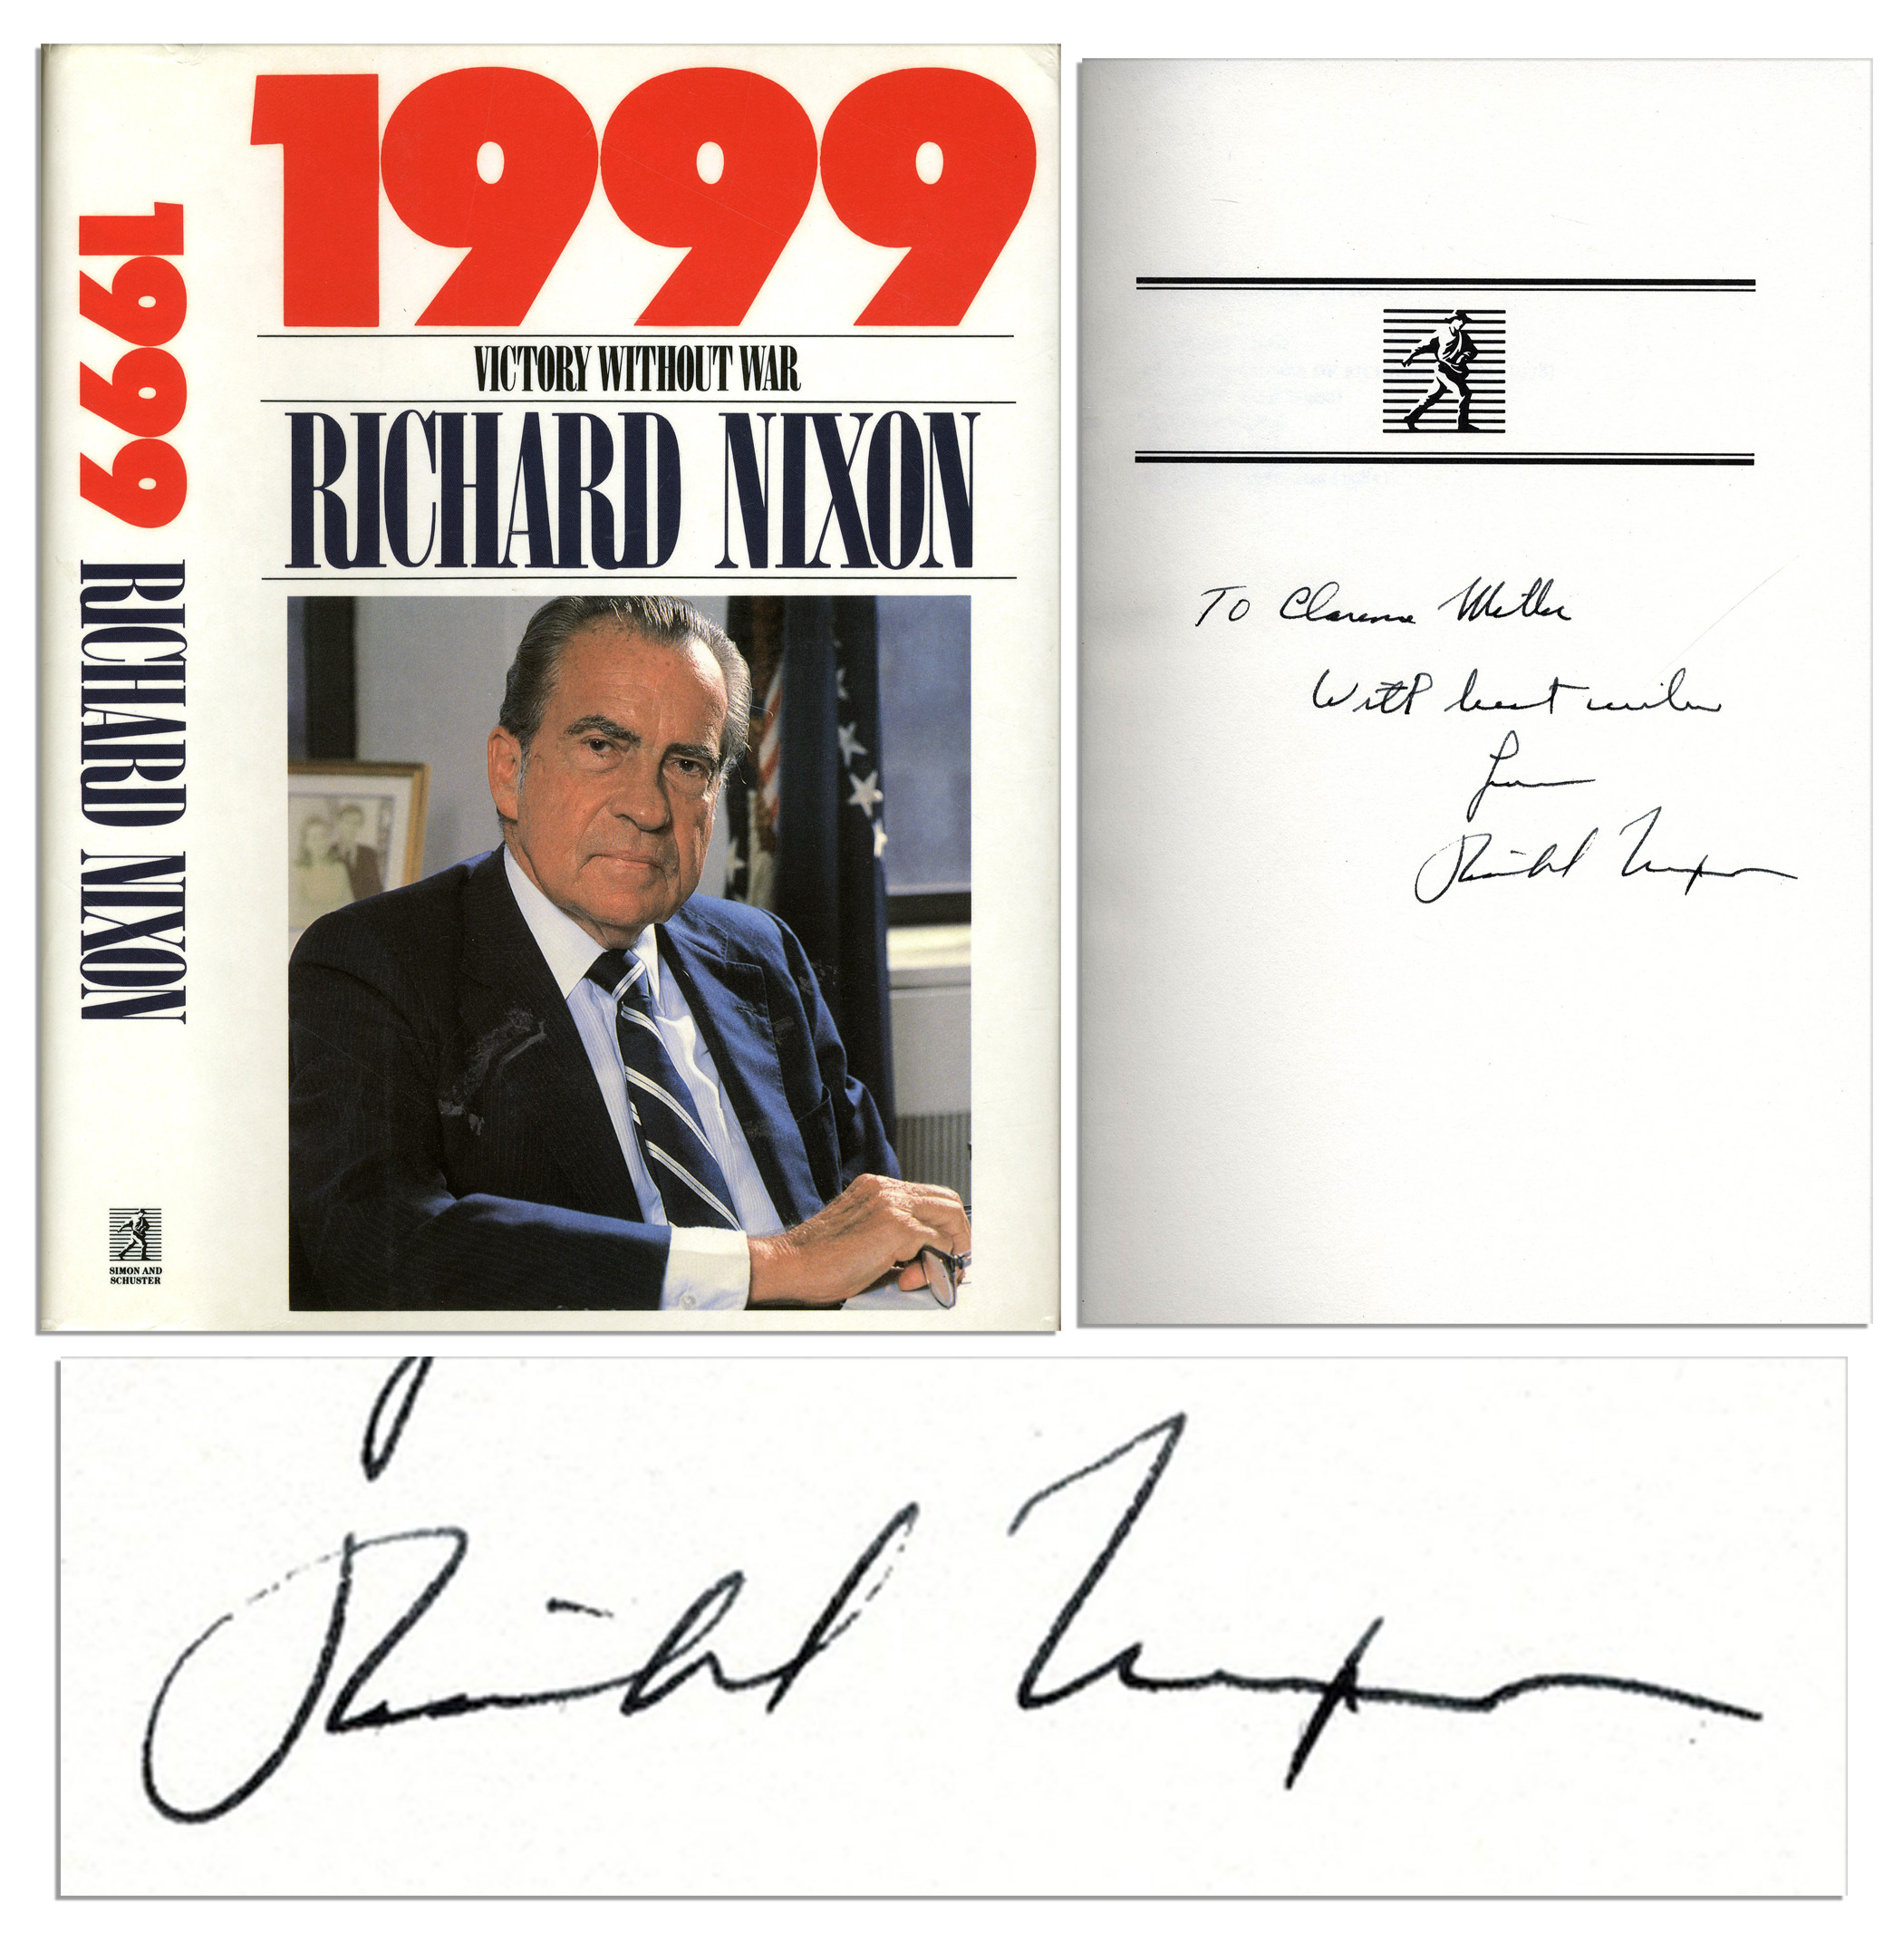 richard nixon essay thesis Richard nixon richard milhous nixon (january 9, 1913 - april 22, 1994) was the 37th president of the united states, serving from 1969 to 1974, when he became the only president to resign the office.